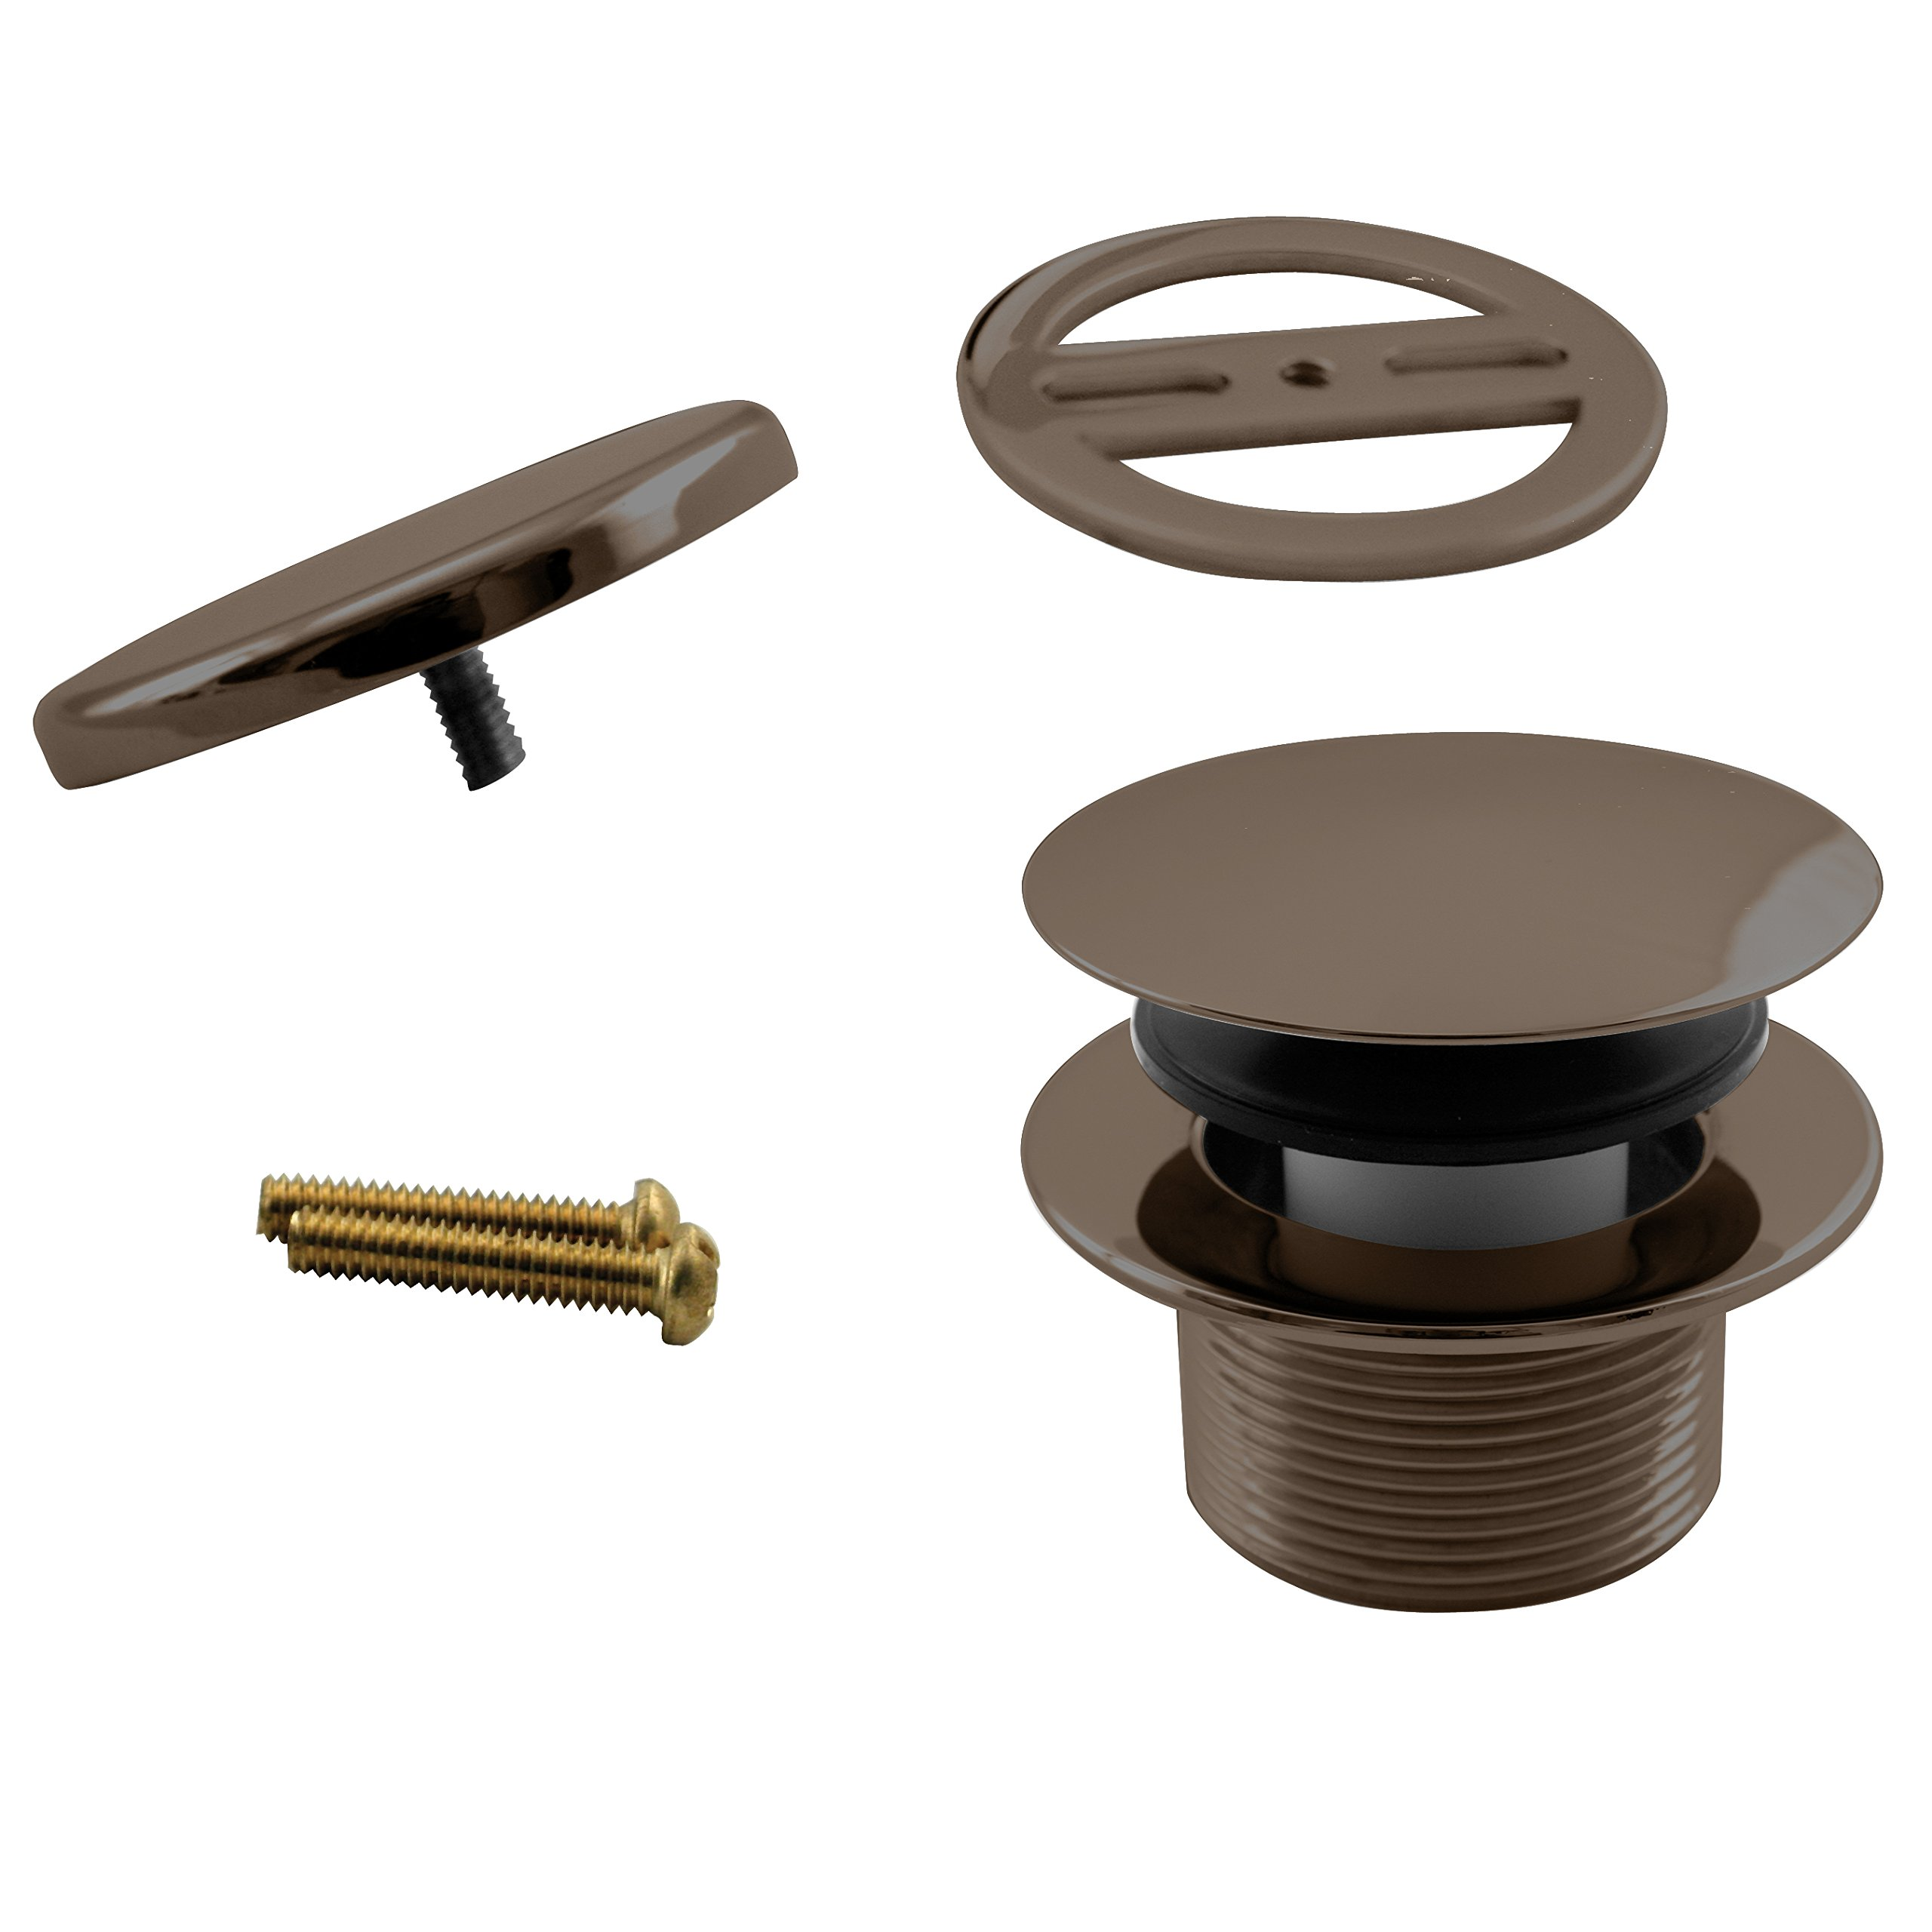 Westbrass Mushroom Tip-Toe Tub Trim Set with Floating Faceplate, Oil Rubbed Bronze, D398RK-12